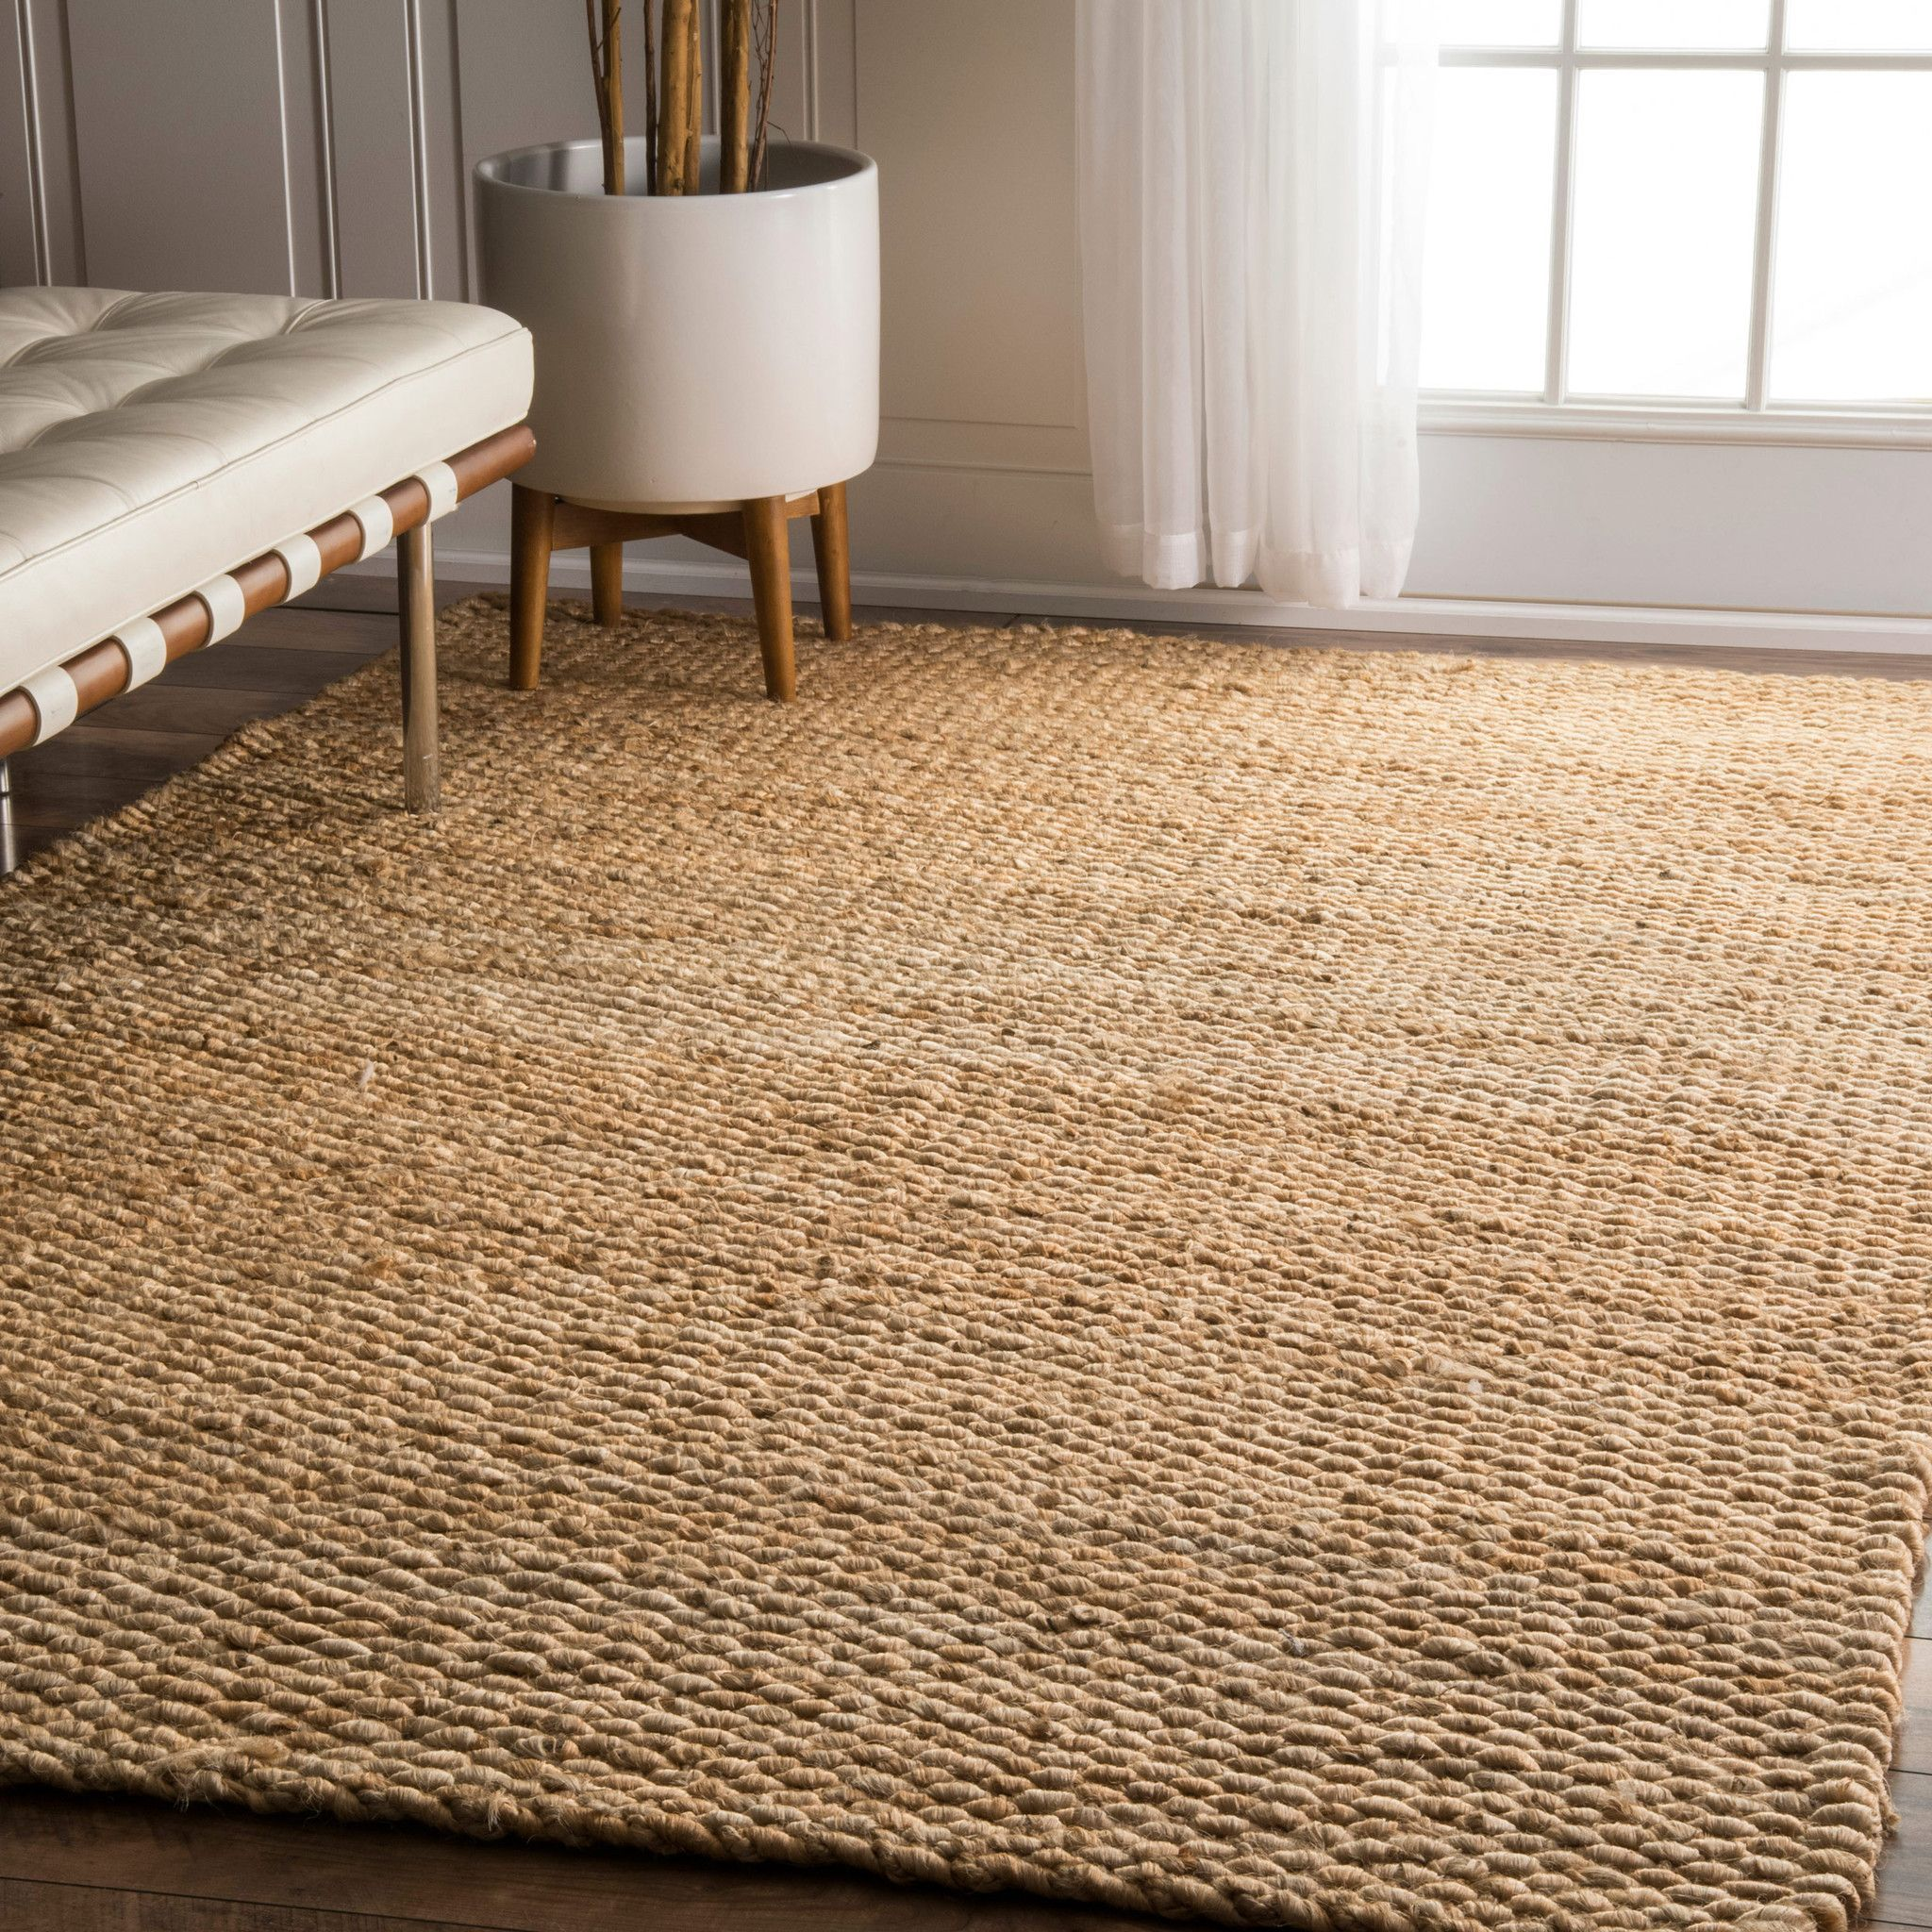 At nuLOOM we believe that floor coverings and art should not be mutually exclusive.